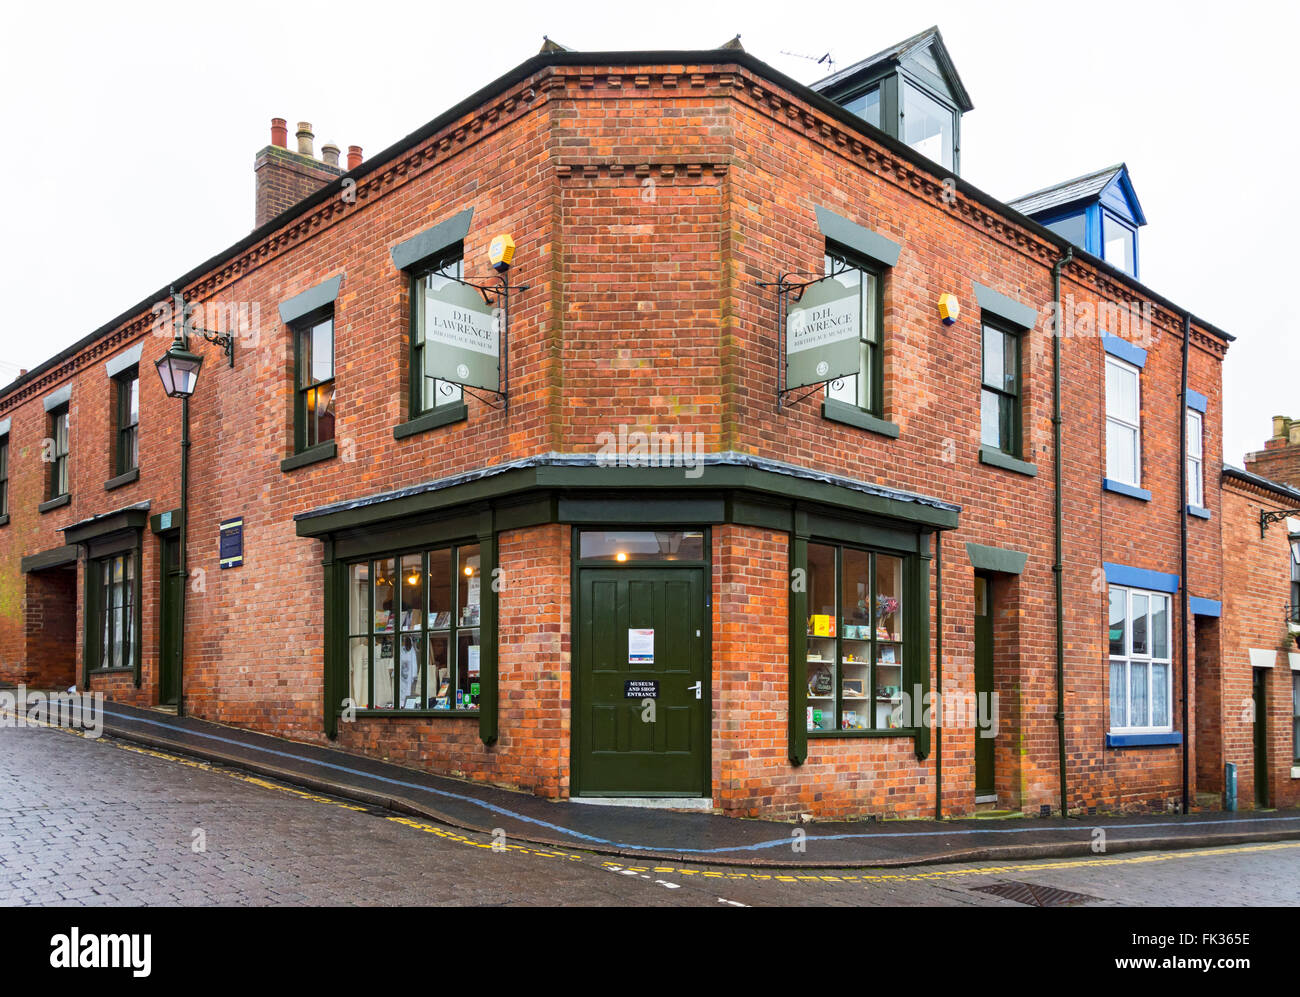 The D.H. Lawrence Birthplace Museum, Eastwood, Nottinghamshire, England, UK. The childhood home of the author. - Stock Image